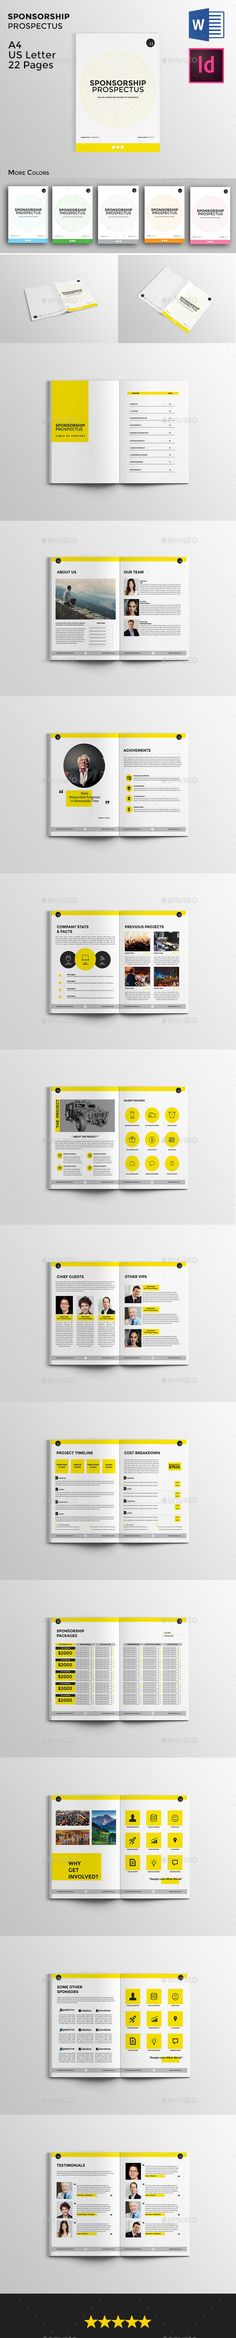 Sponsorship Prospectus Template #design Download: http://graphicriver.net/item/sponsorship-prospectus/12200118?ref=ksioks